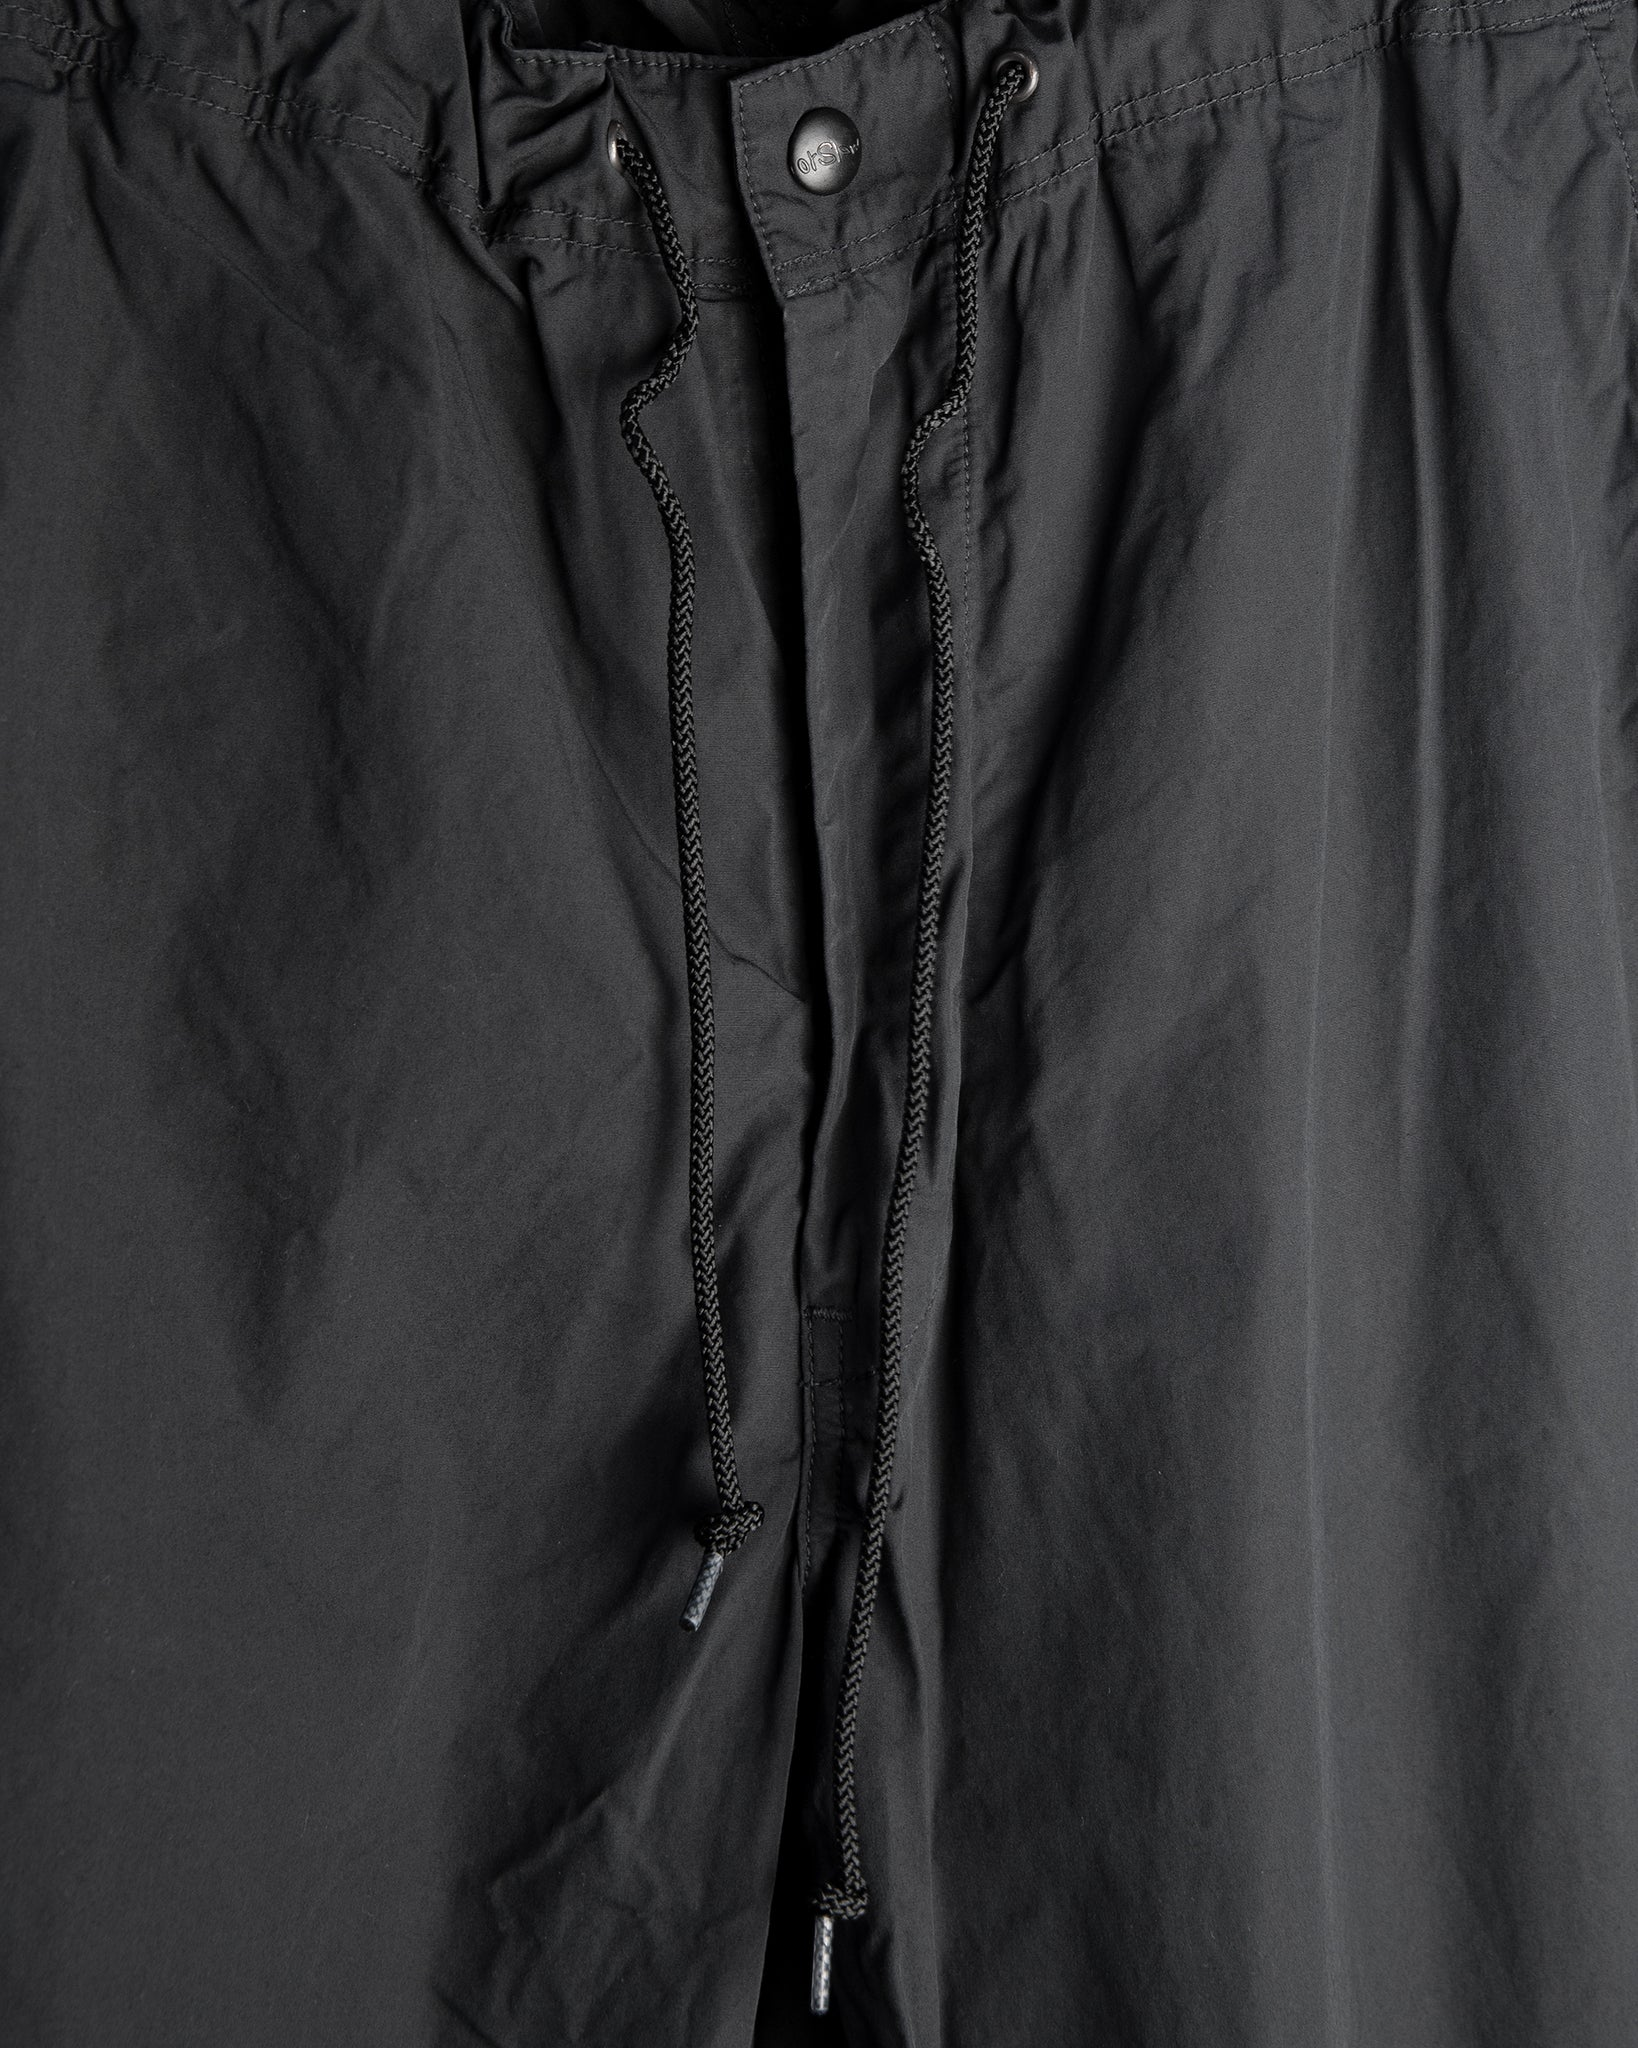 New Yorker Pant - Charcoal Grey